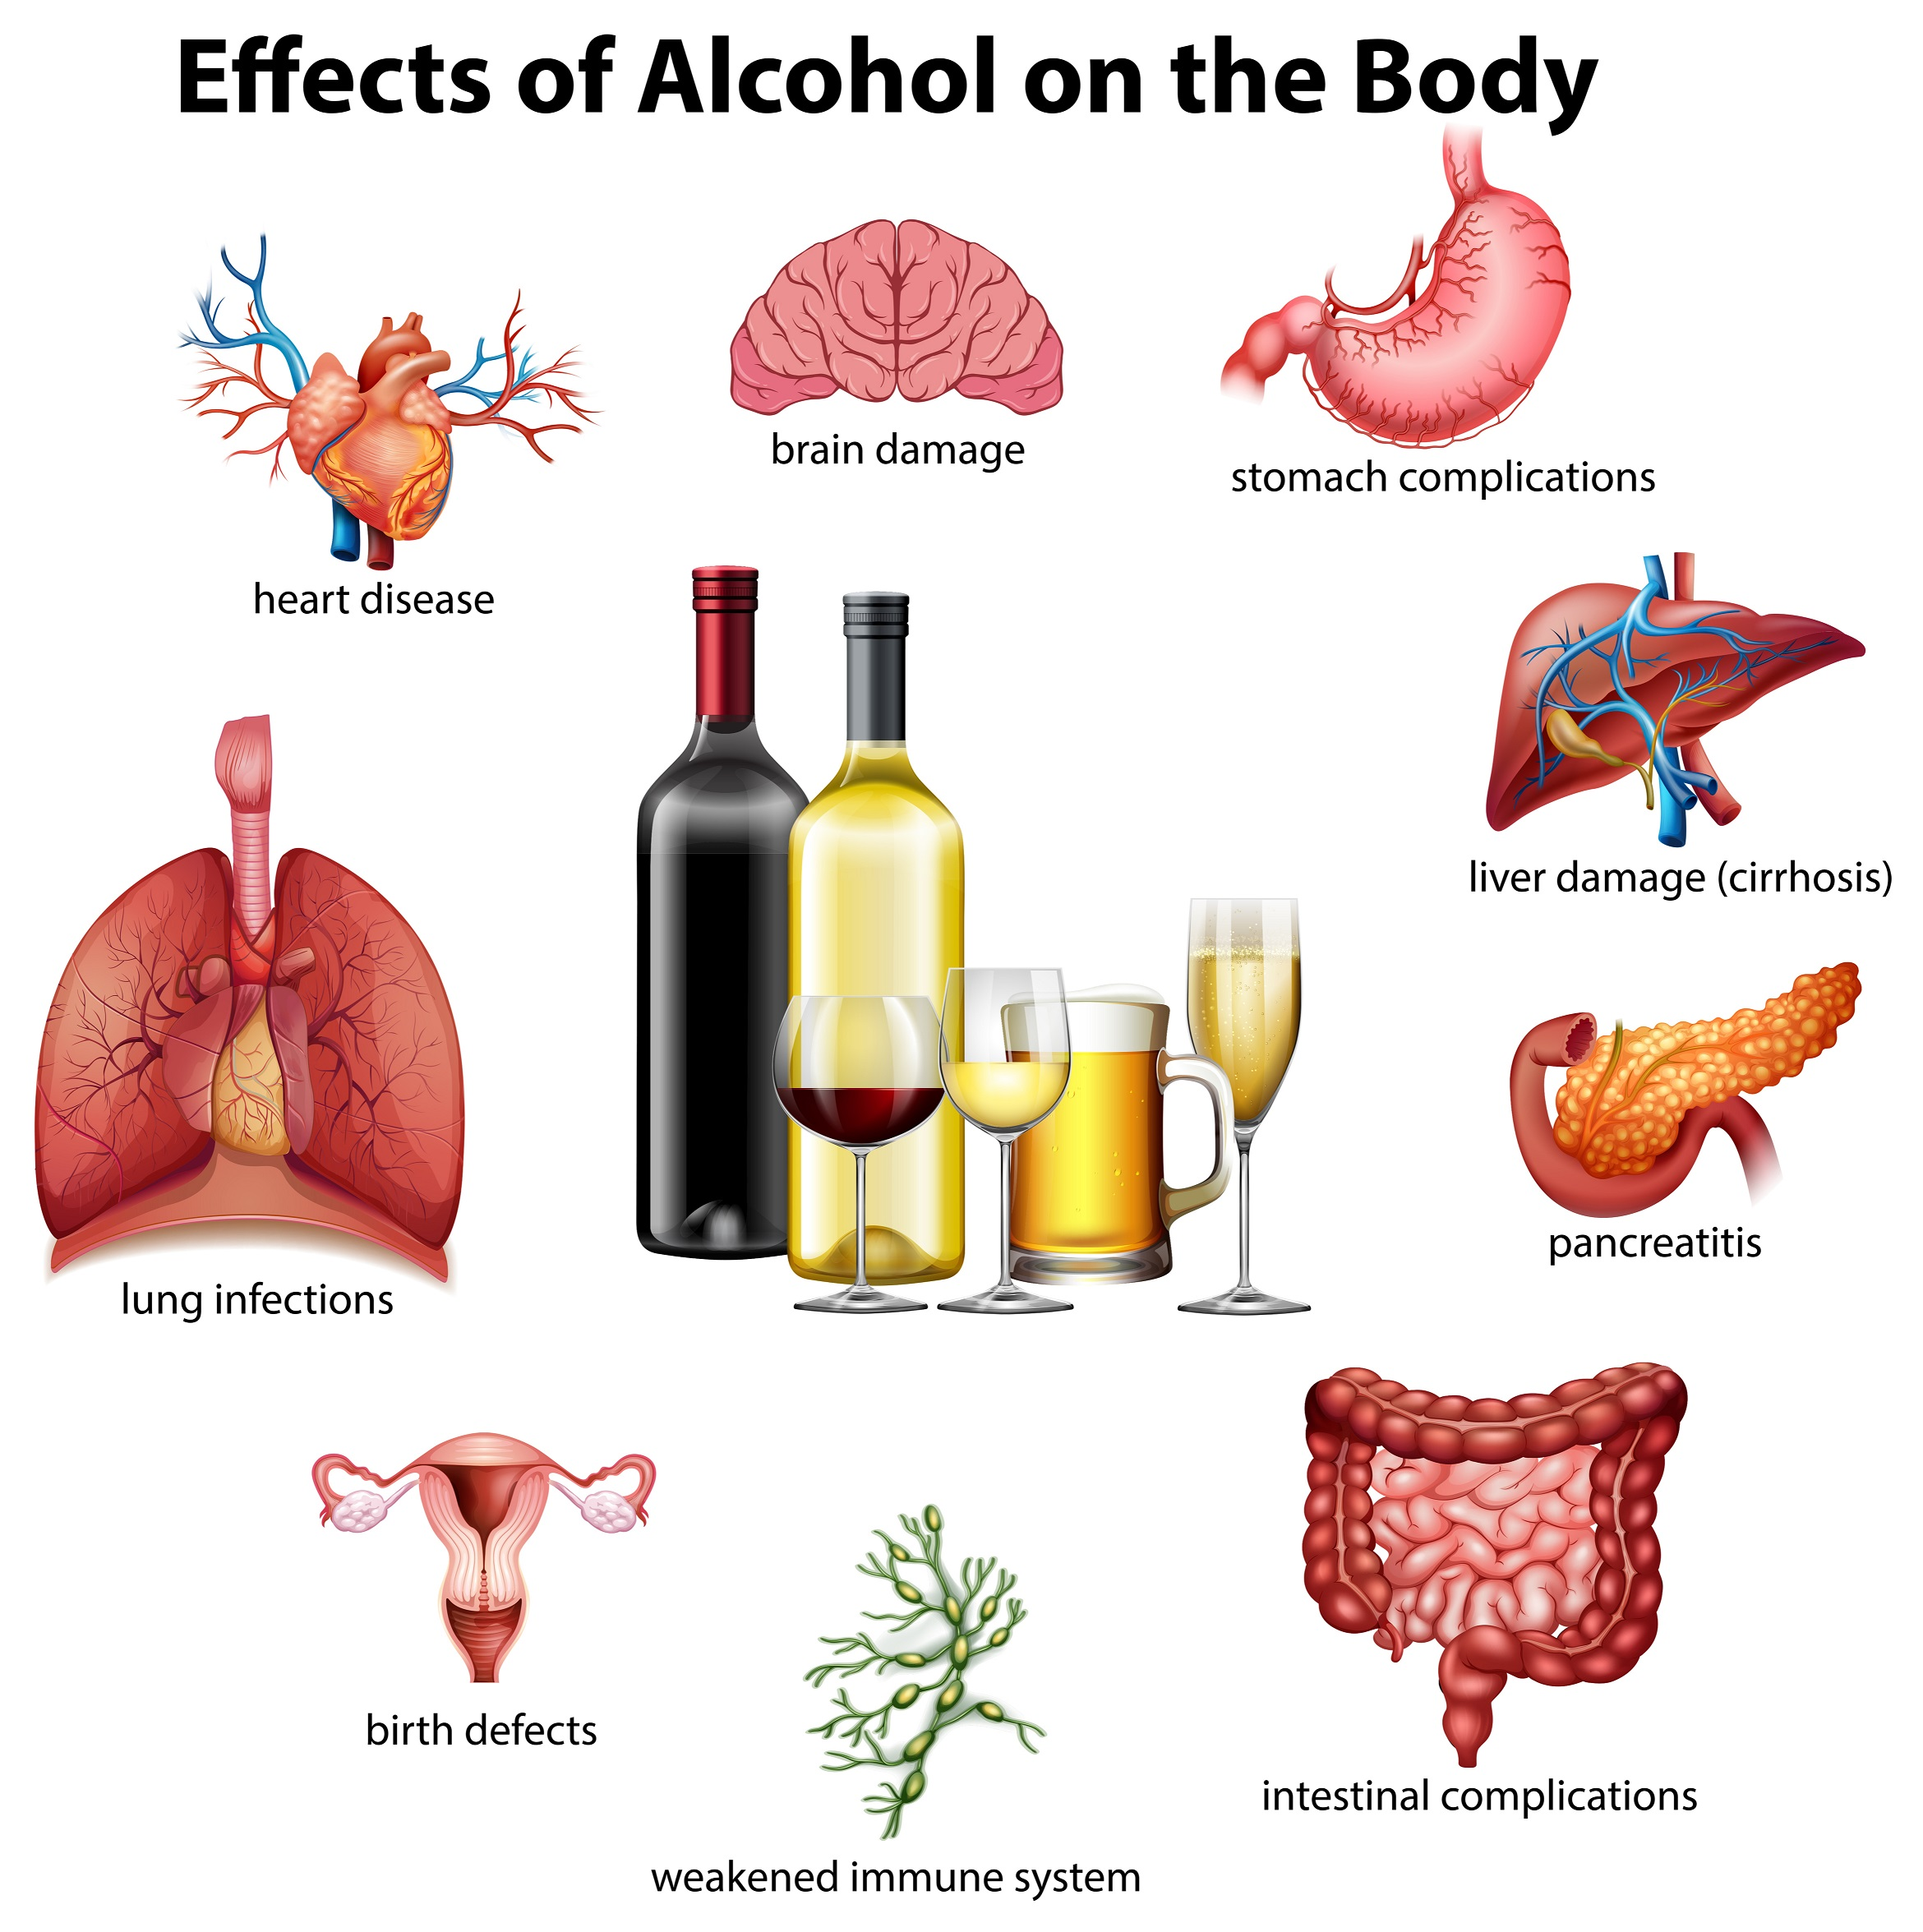 Remember that alcohol is rather not optimal choice for our health...